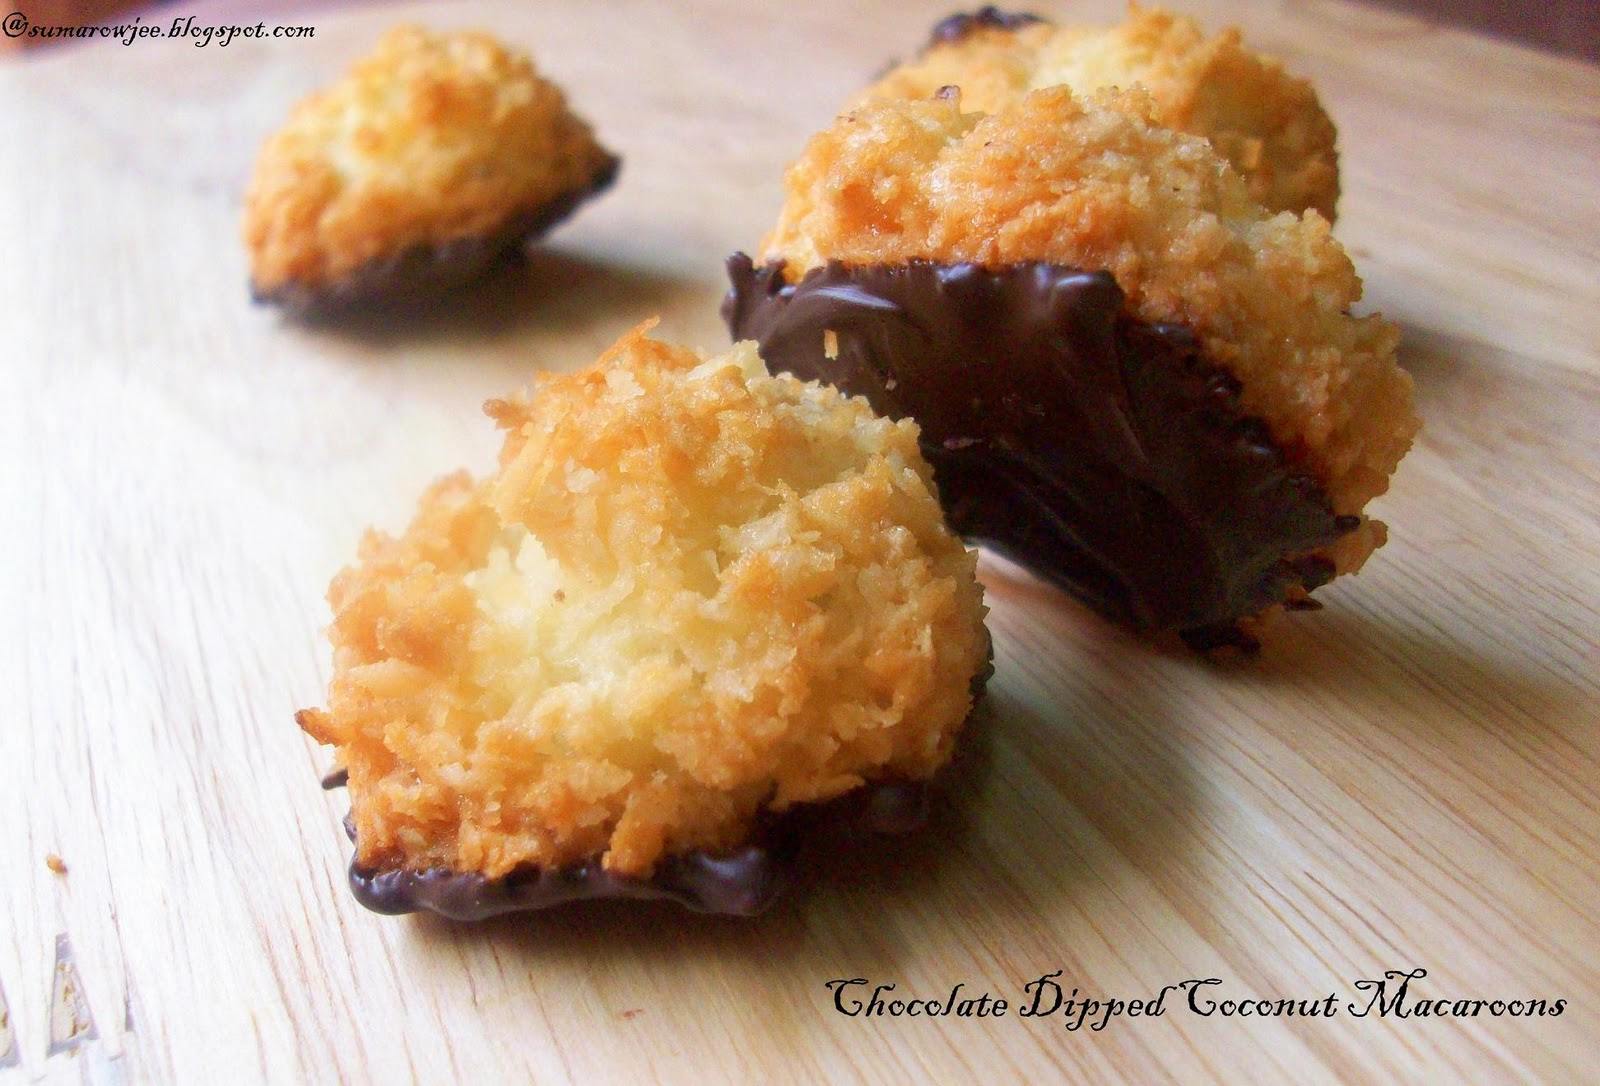 Cakes And More!: Chocolate Dipped Coconut Macaroons